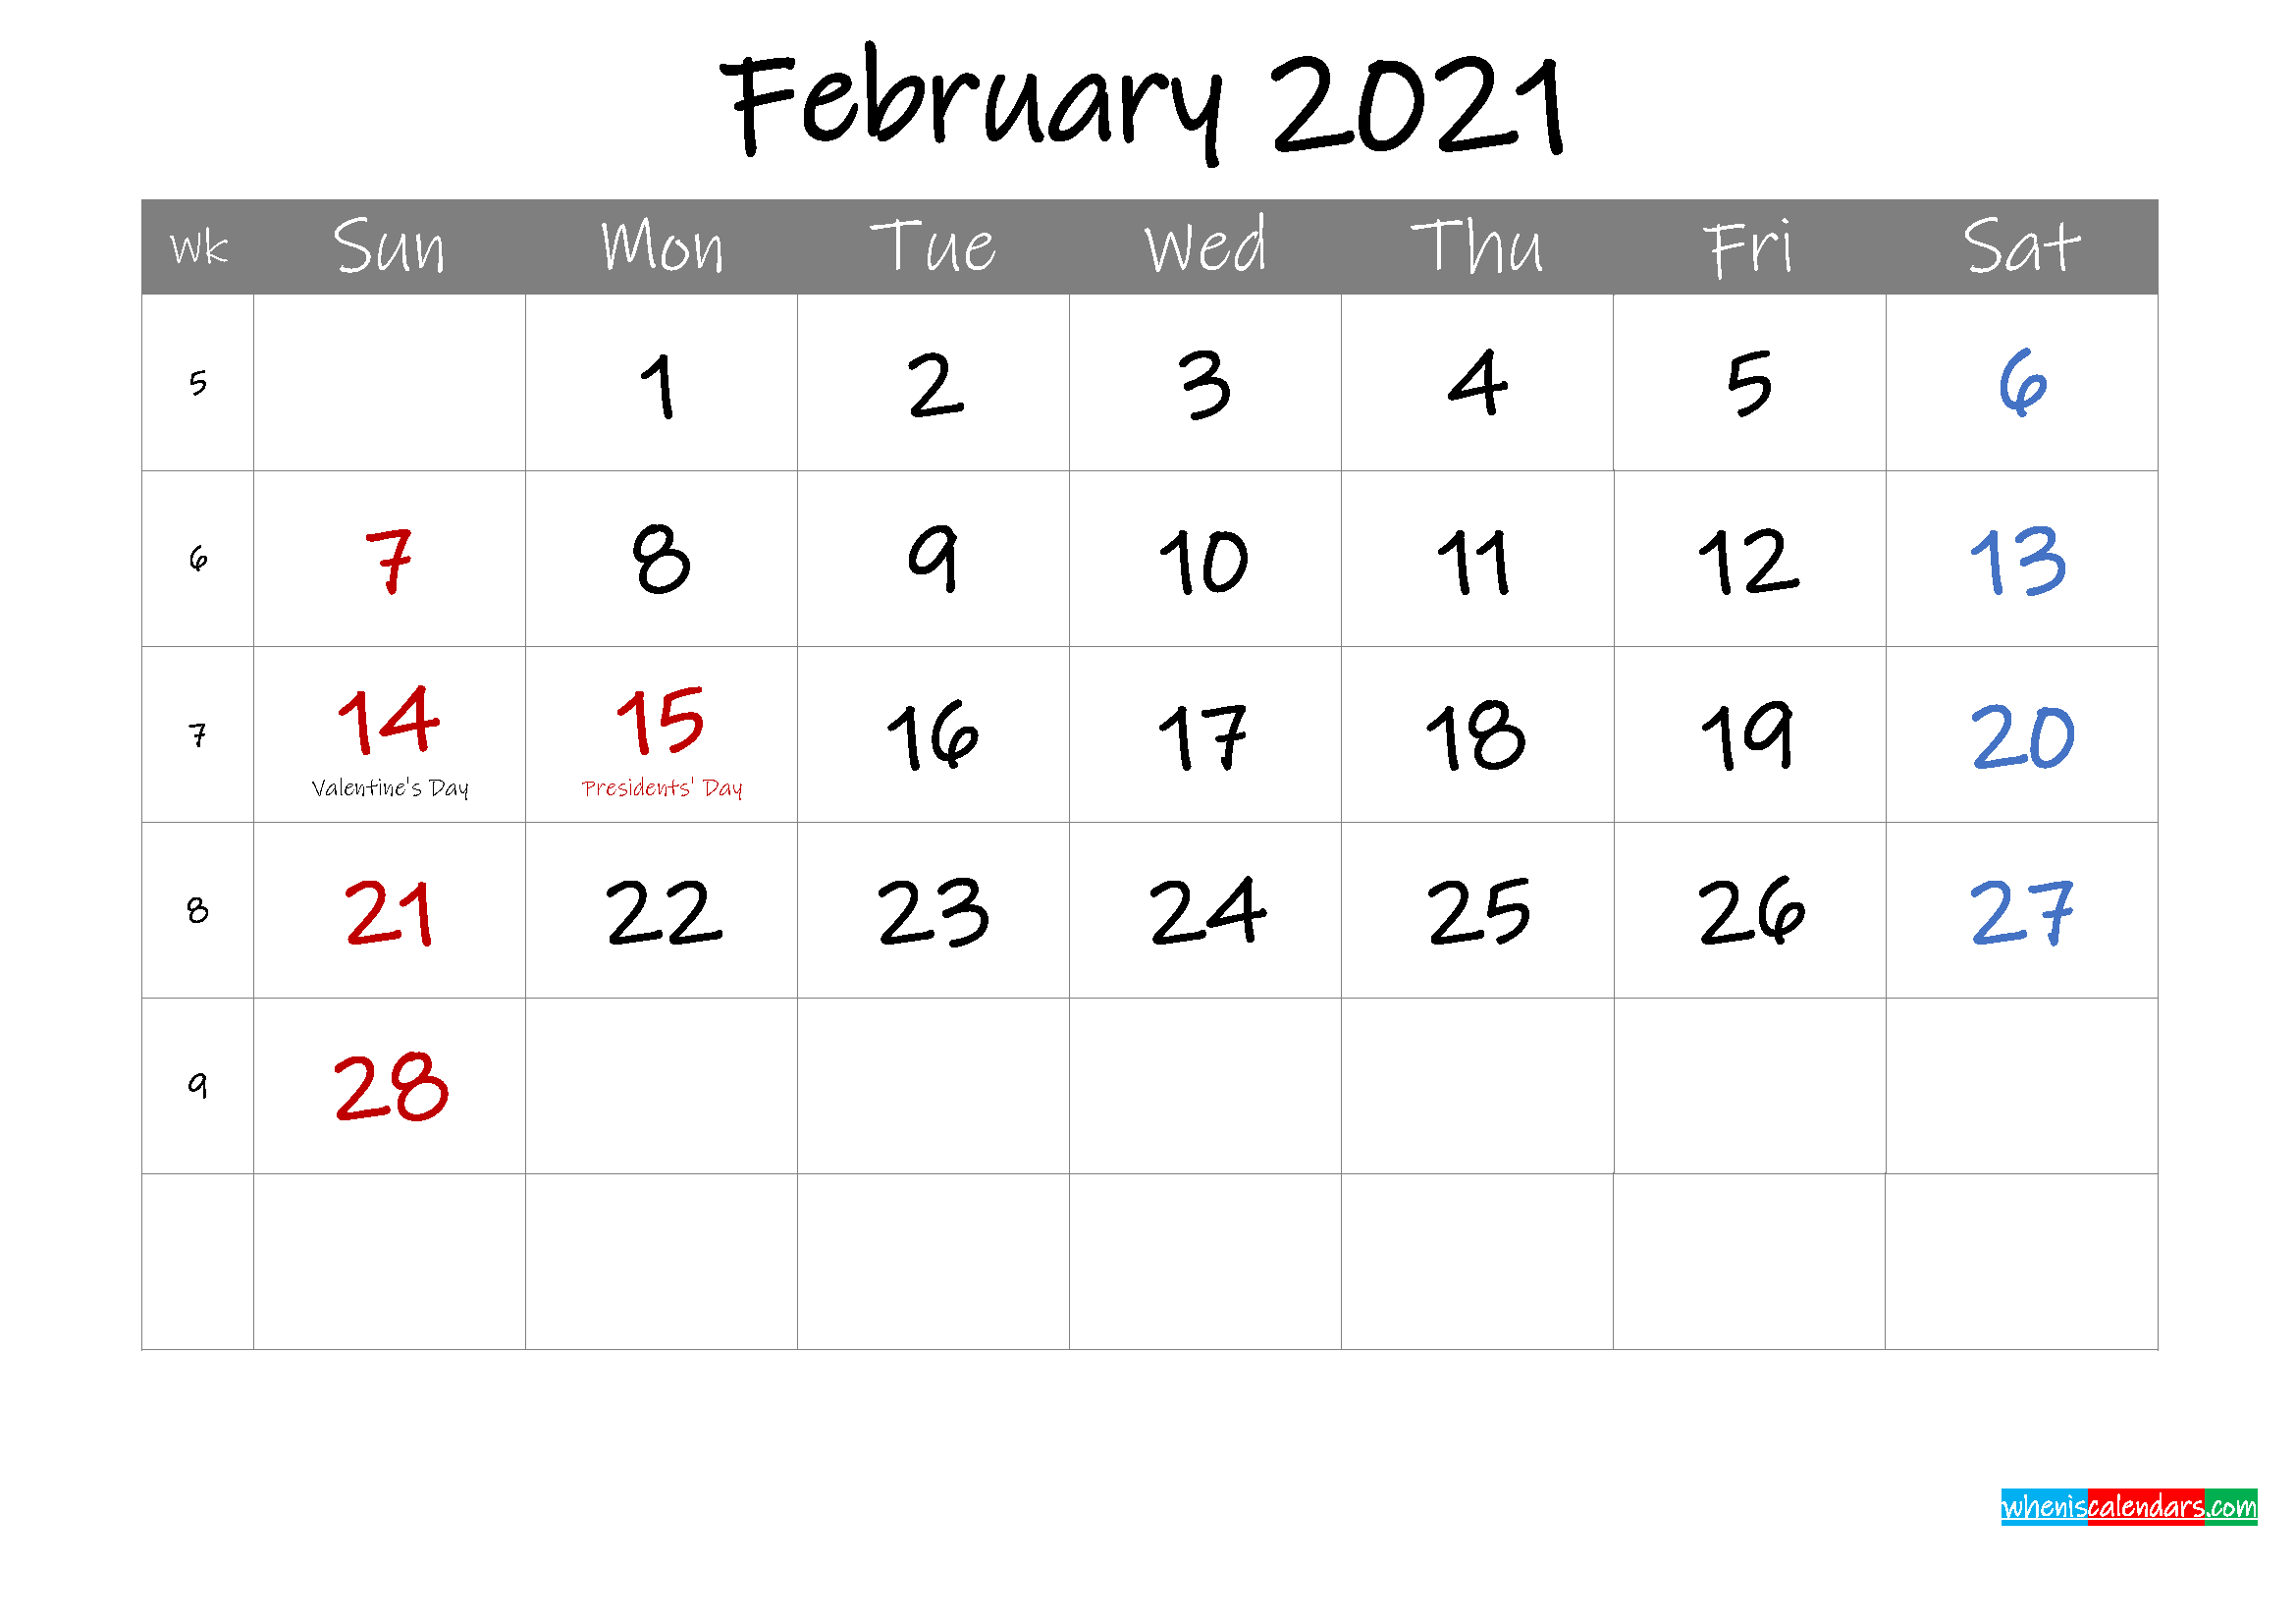 Editable February 2021 Calendar with Holidays